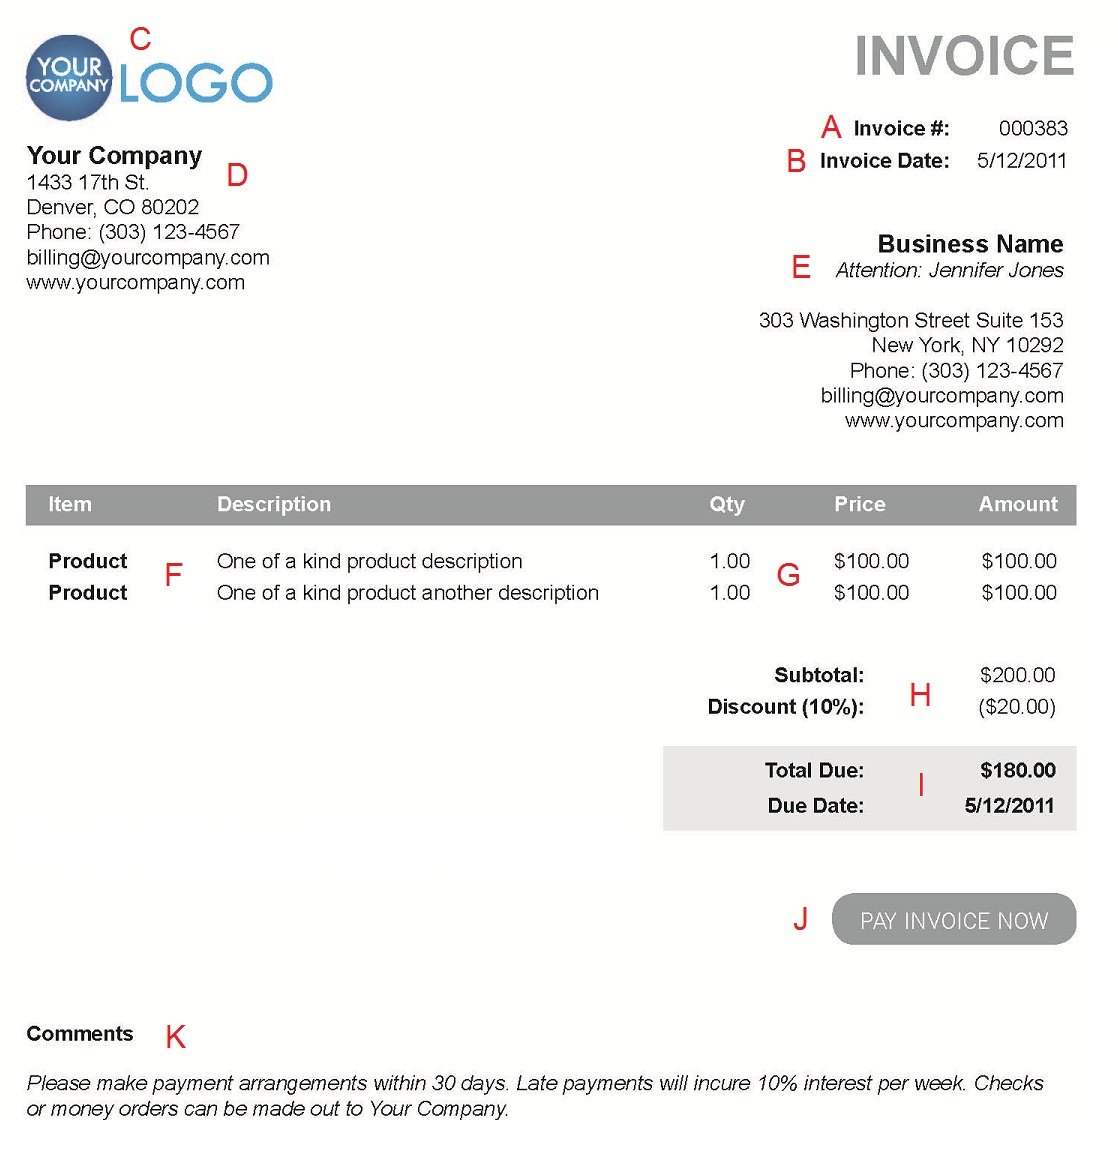 Centralasianshepherdus  Inspiring The  Different Sections Of An Electronic Payment Invoice With Lovely A  With Agreeable Simple Invoices Also Microsoft Excel Invoice Template In Addition Vendor Invoice And Msrp Vs Invoice Price As Well As Invoice Payment Additionally Free Printable Invoice Template From Paysimplecom With Centralasianshepherdus  Lovely The  Different Sections Of An Electronic Payment Invoice With Agreeable A  And Inspiring Simple Invoices Also Microsoft Excel Invoice Template In Addition Vendor Invoice From Paysimplecom